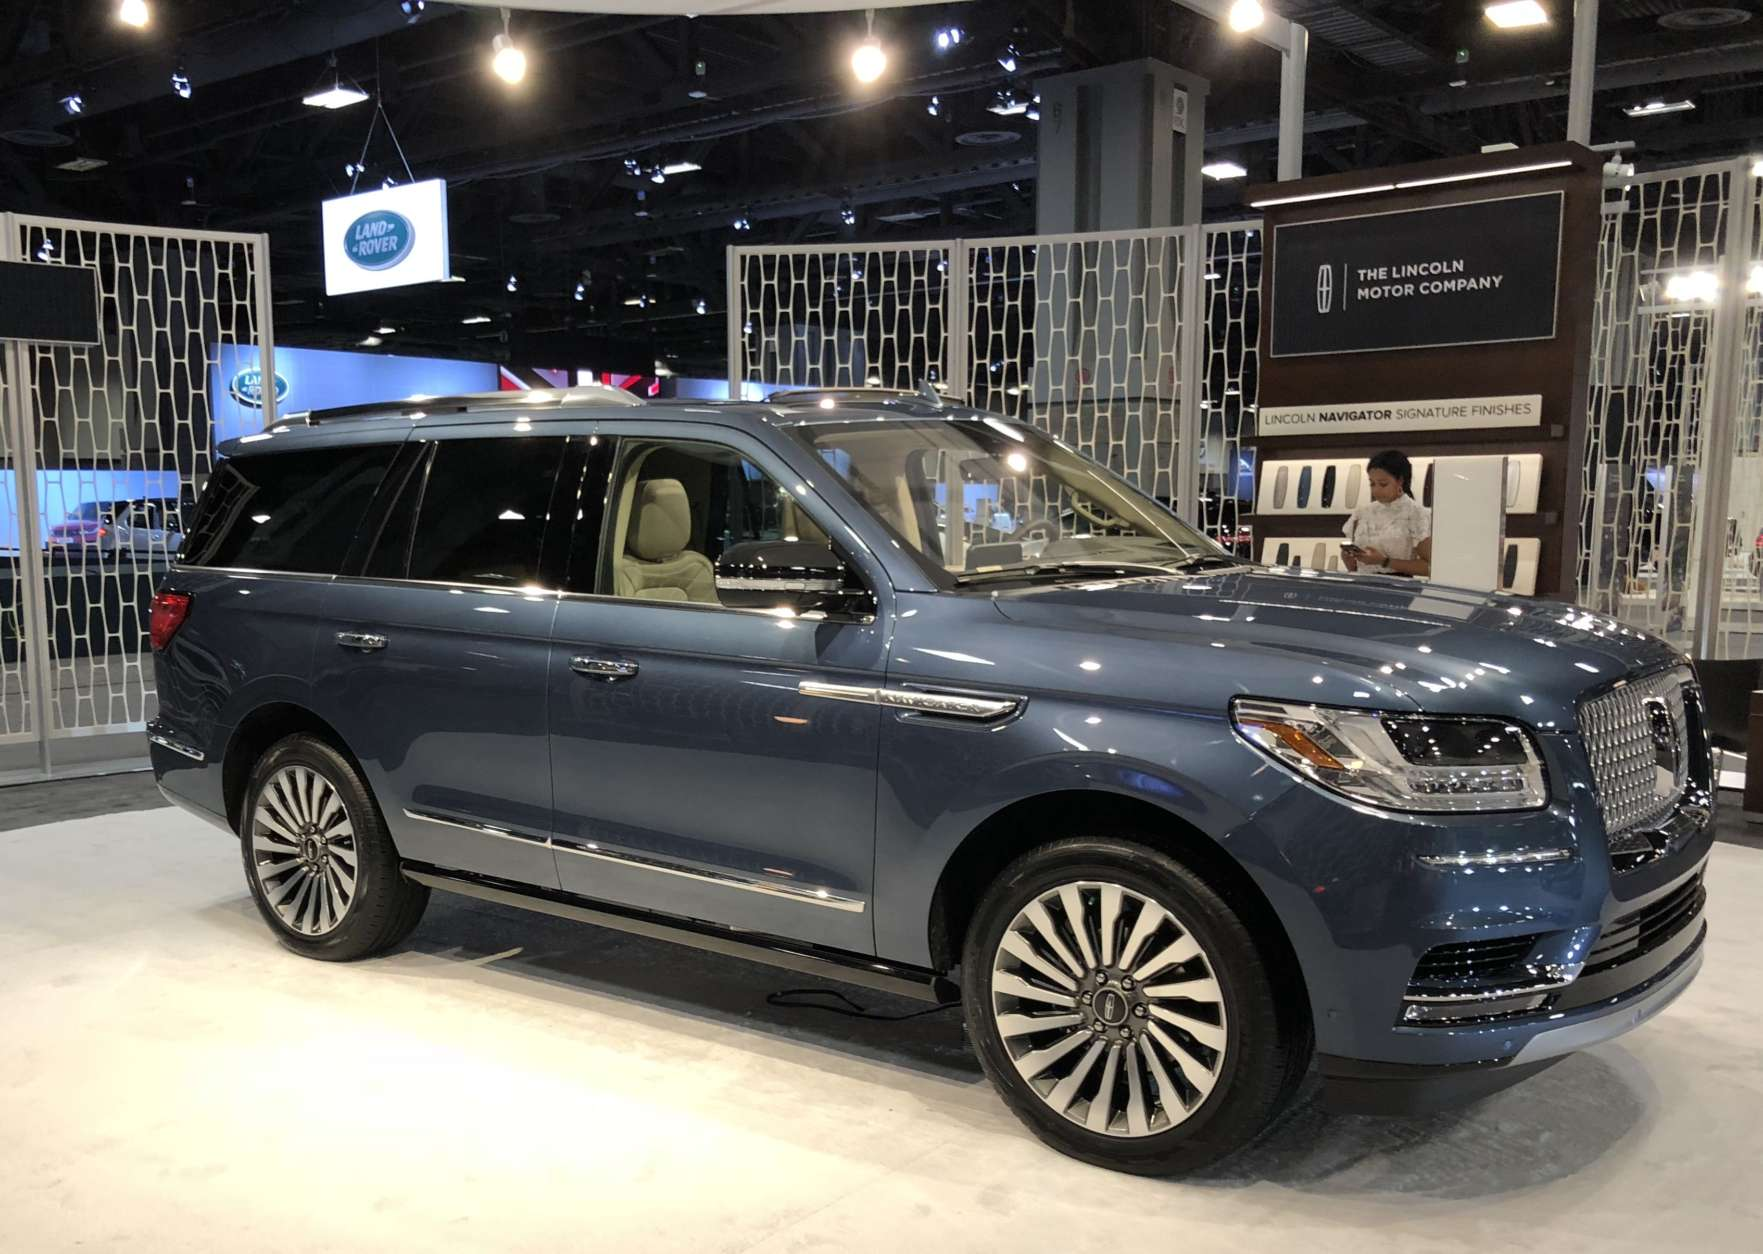 Lincoln Navigator (Mike Parris)